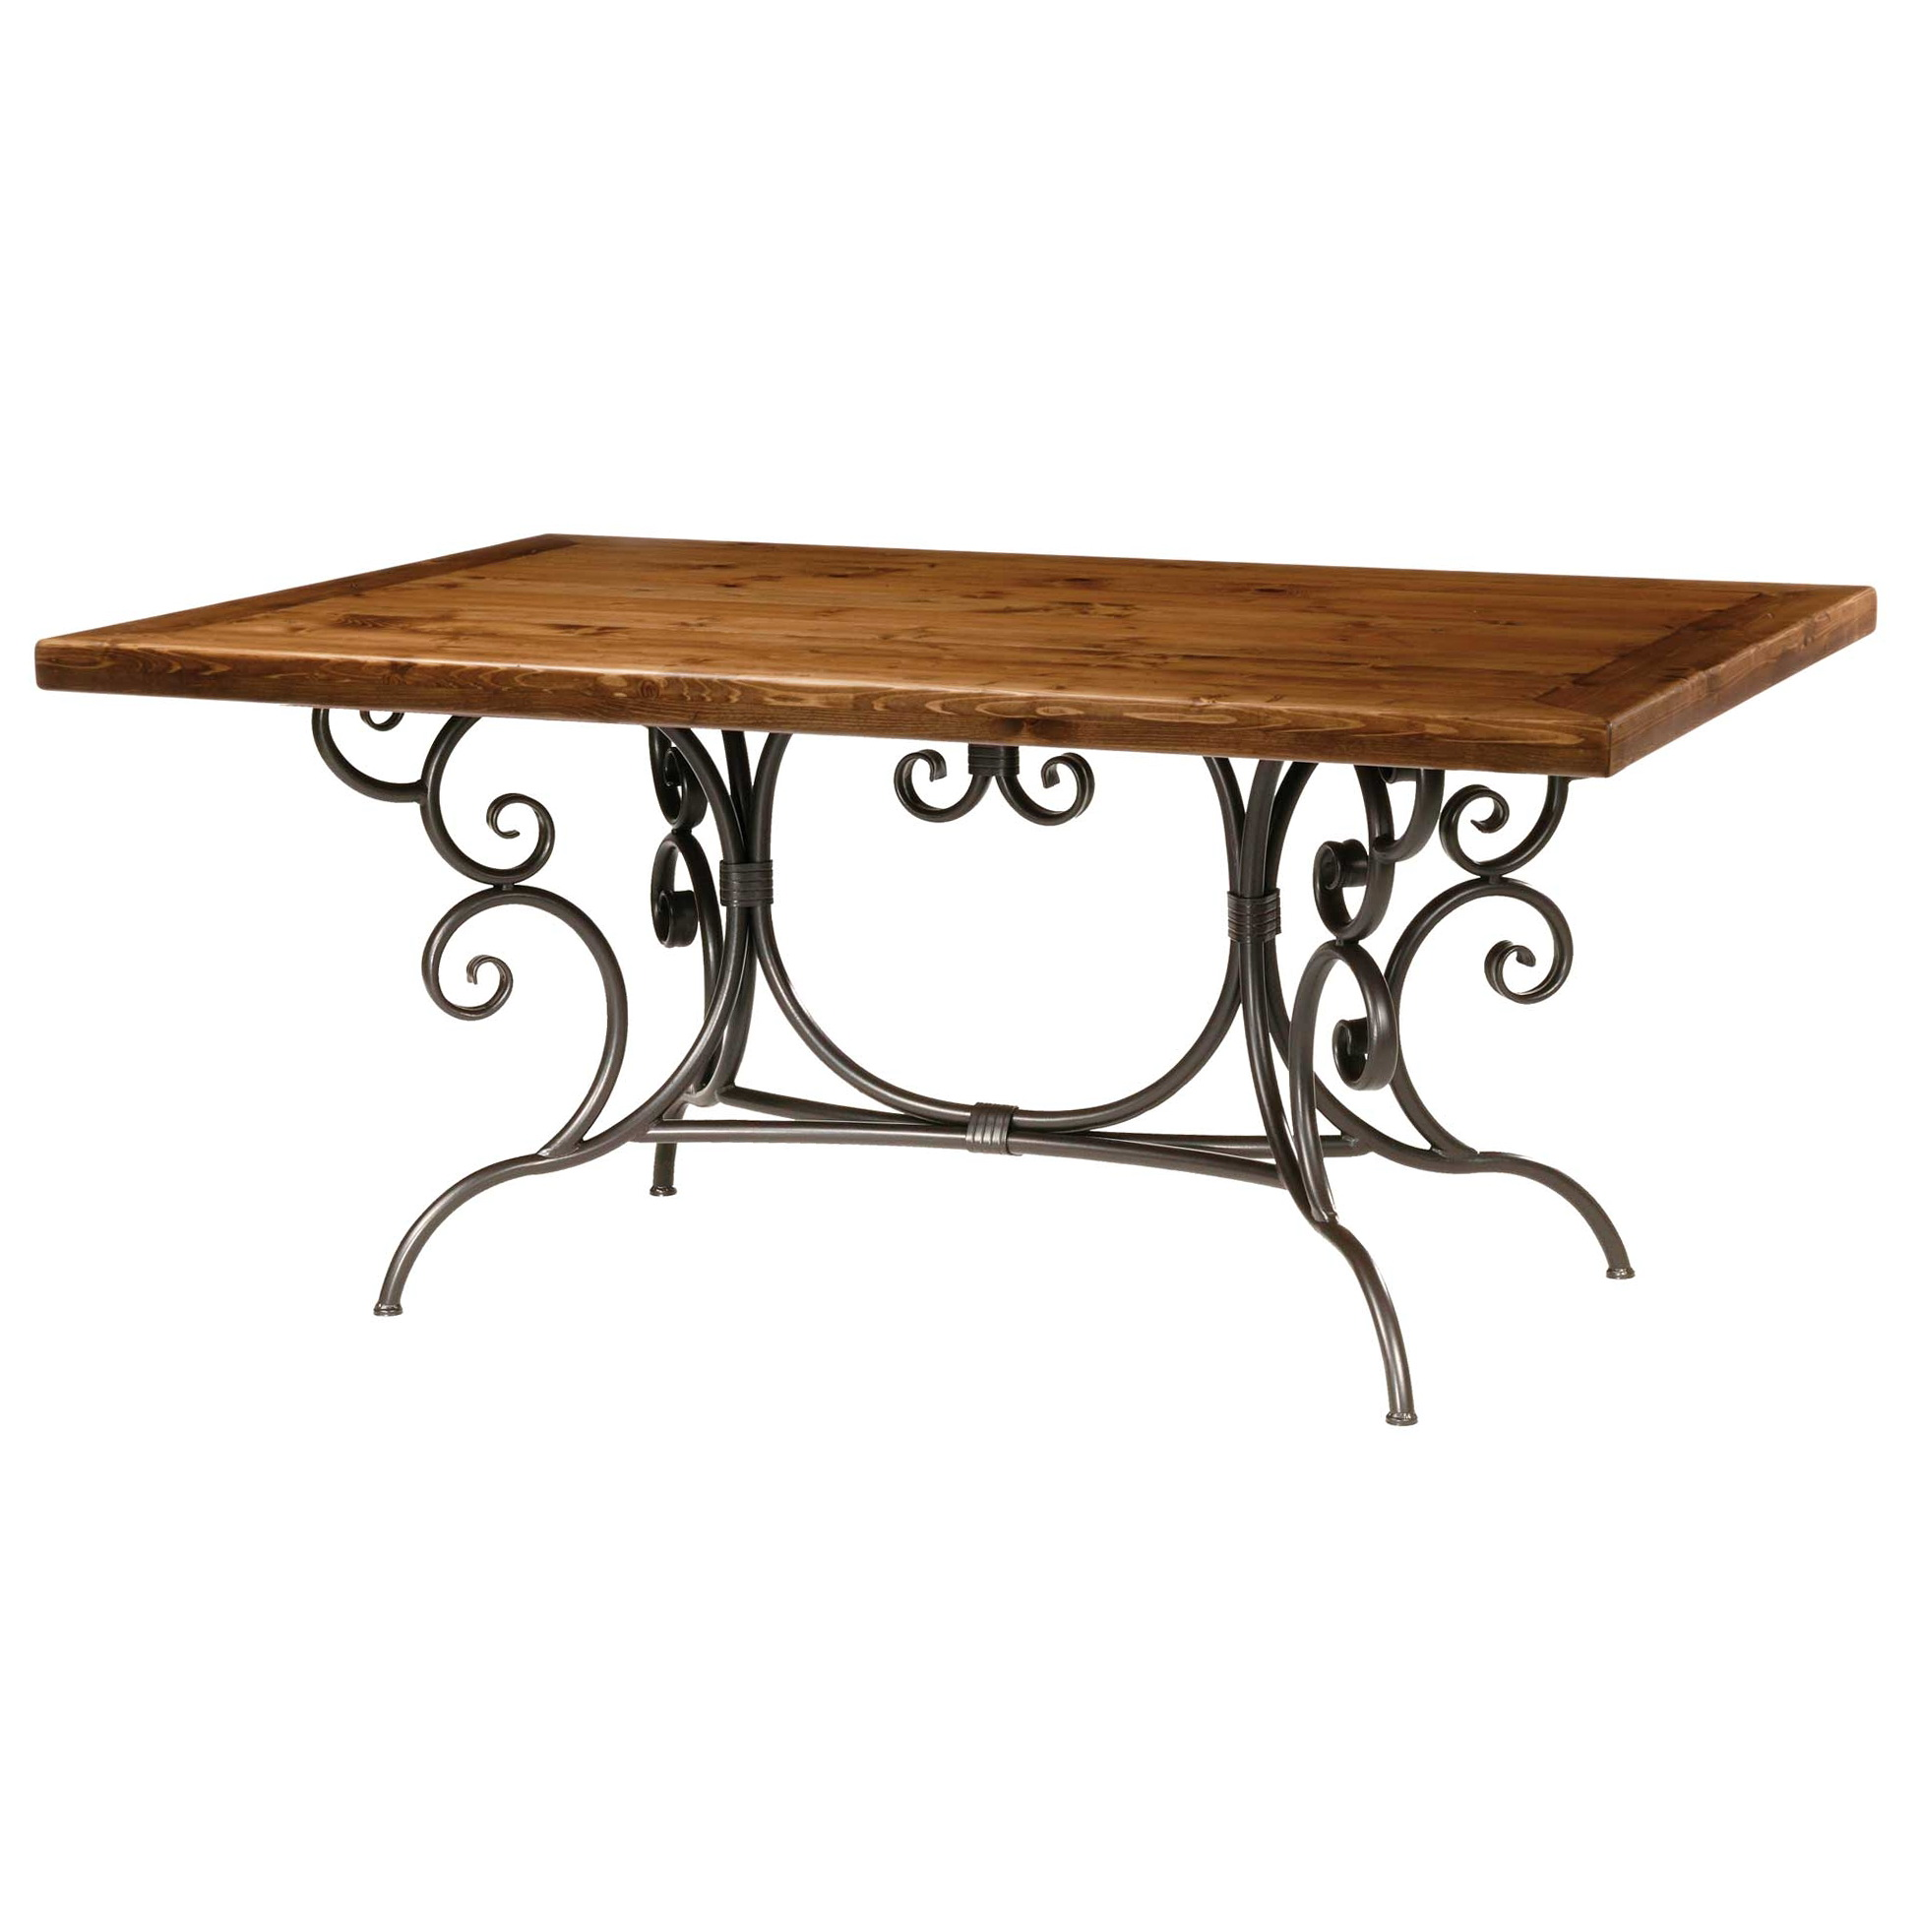 Wrought iron console table base only home design ideas for Wrought iron side table base